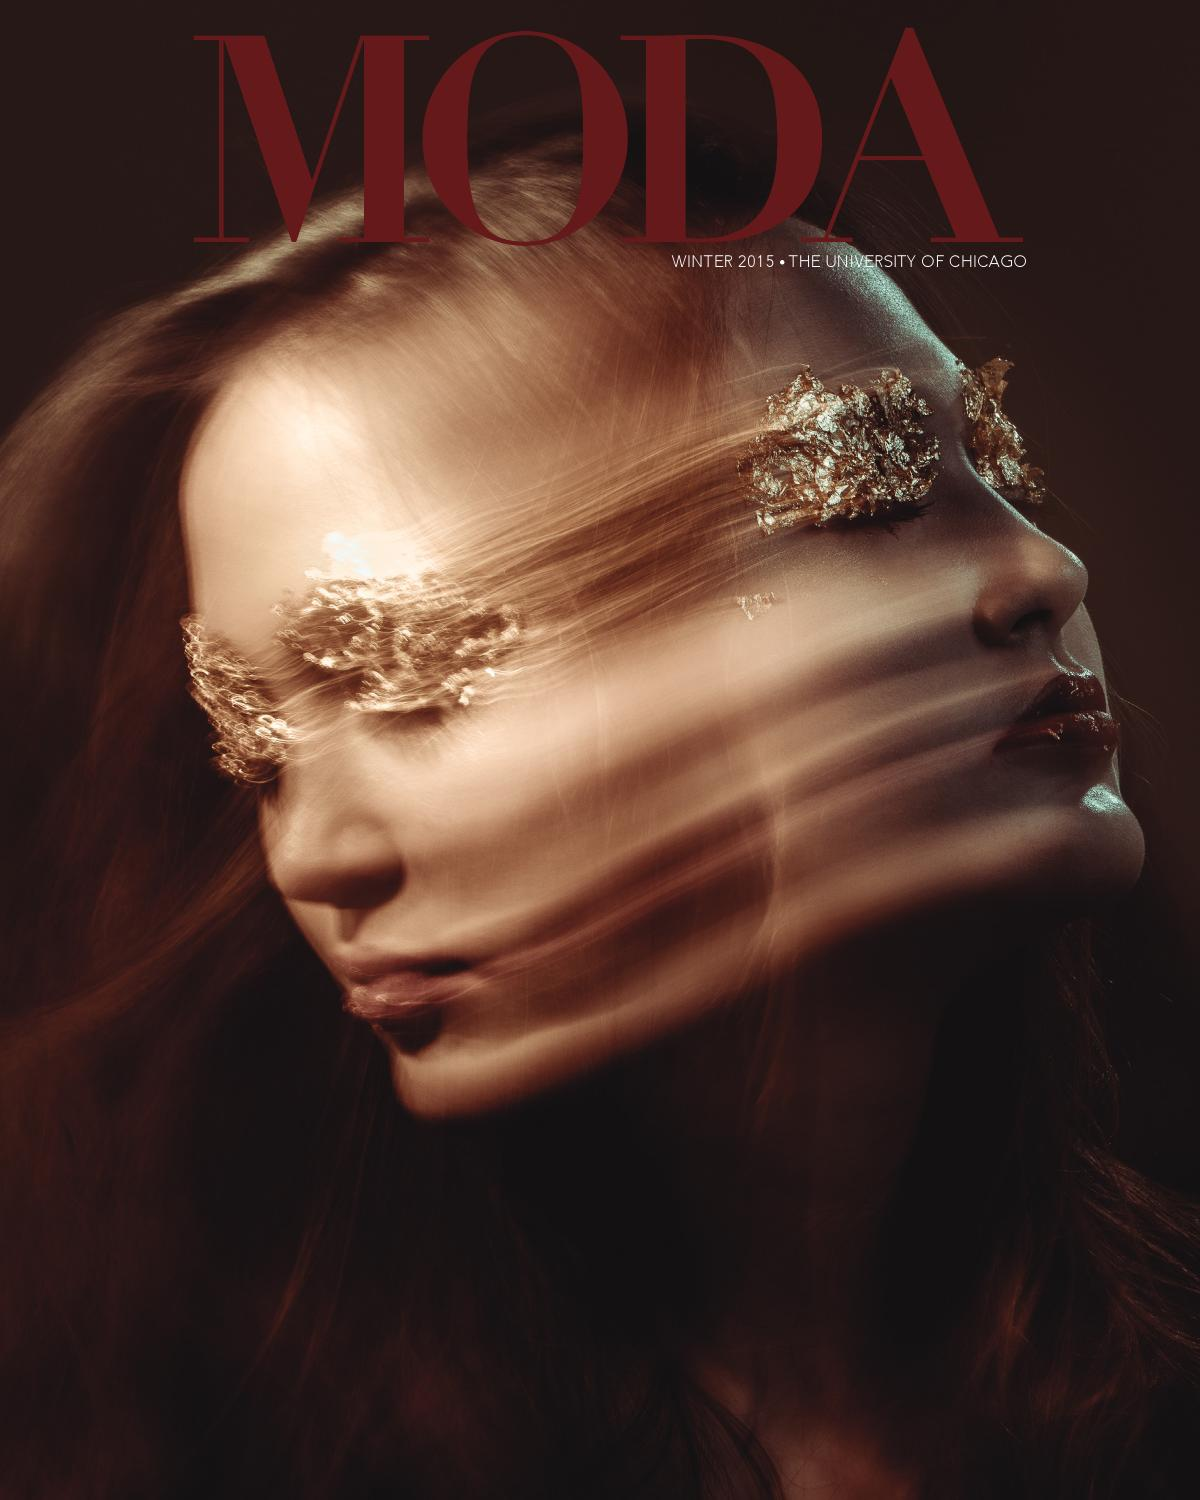 MODA Magazine Winter 2015 by MODA - issuu 39ec31d3a